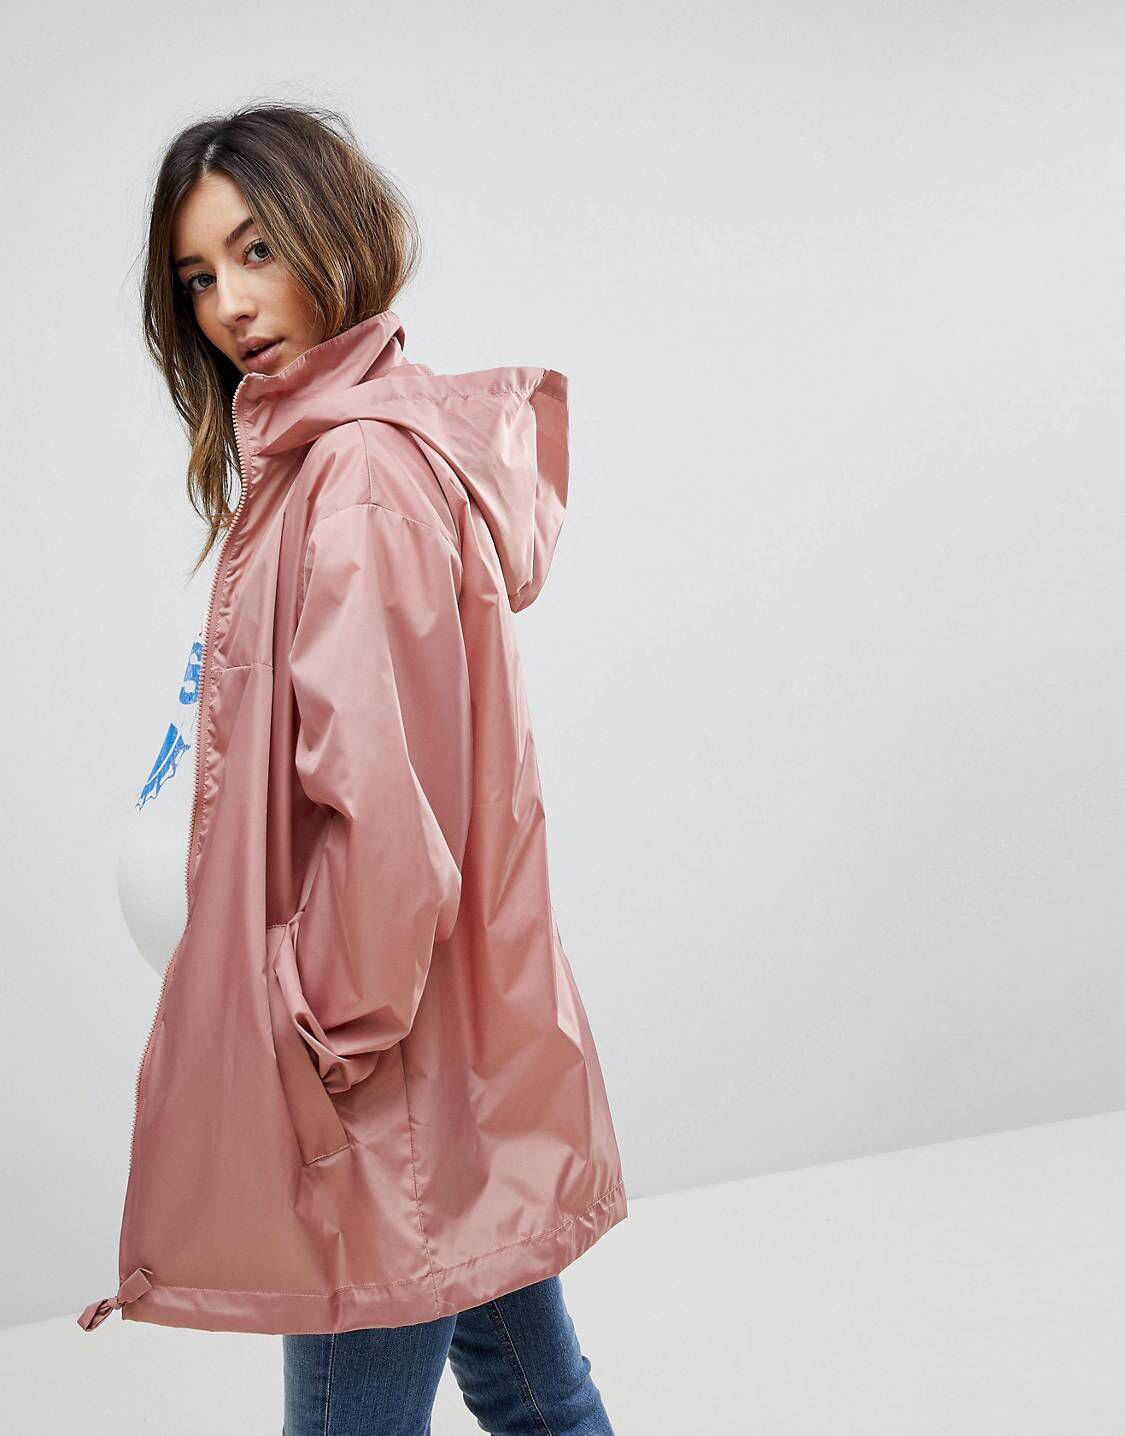 ce5b0abd615e1 Shop ASOS DESIGN Maternity rain jacket at ASOS. Discover fashion online. Maternity  Coat,